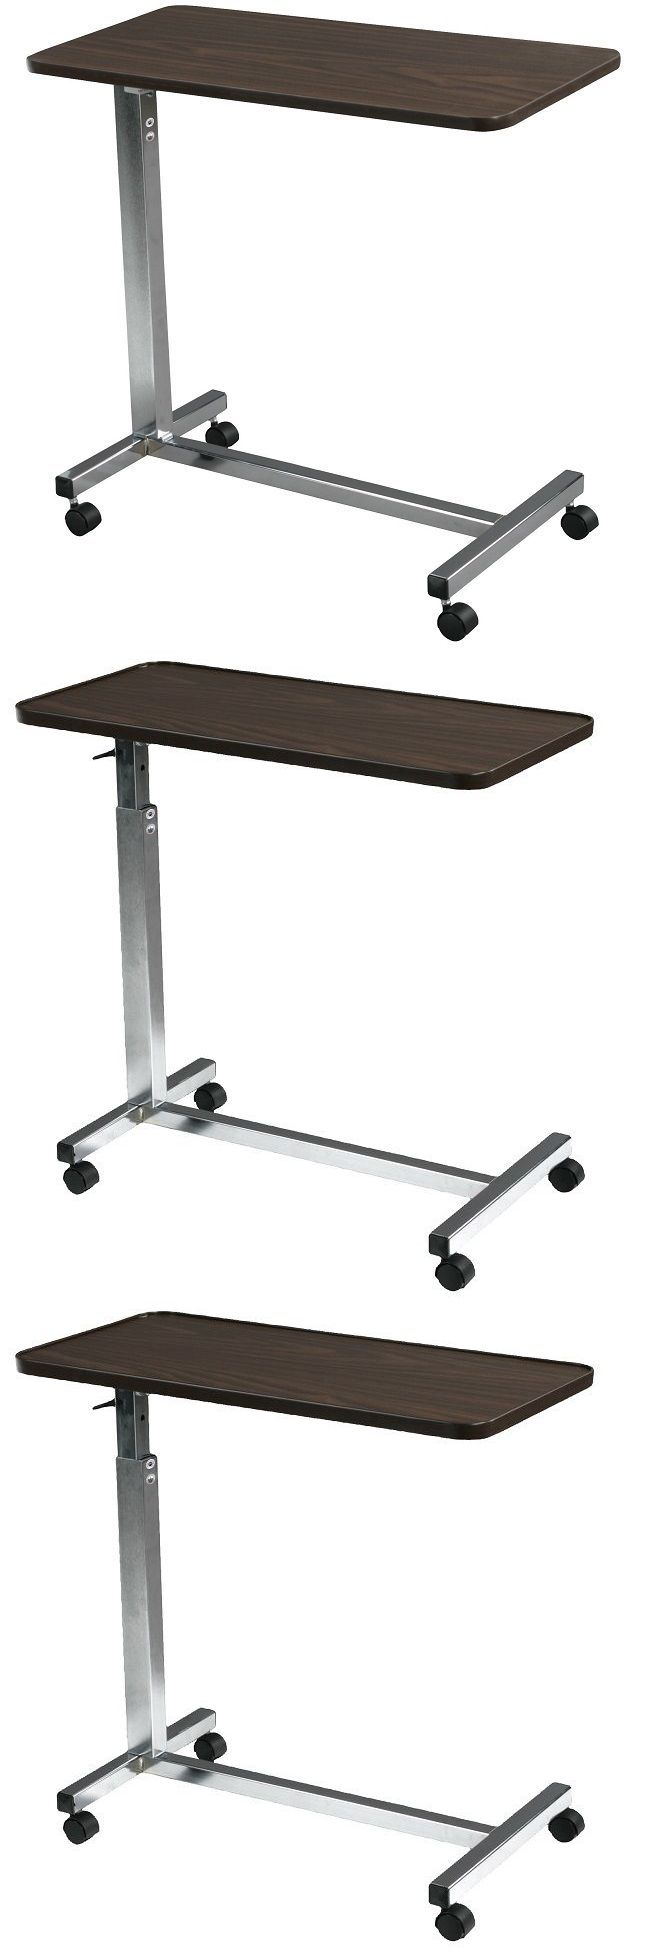 Bed and Chair Tables: Over The Bed Table With Wheels Computer For Hospital Tray Adjustable Laptop Desk -> BUY IT NOW ONLY: $71.64 on eBay!